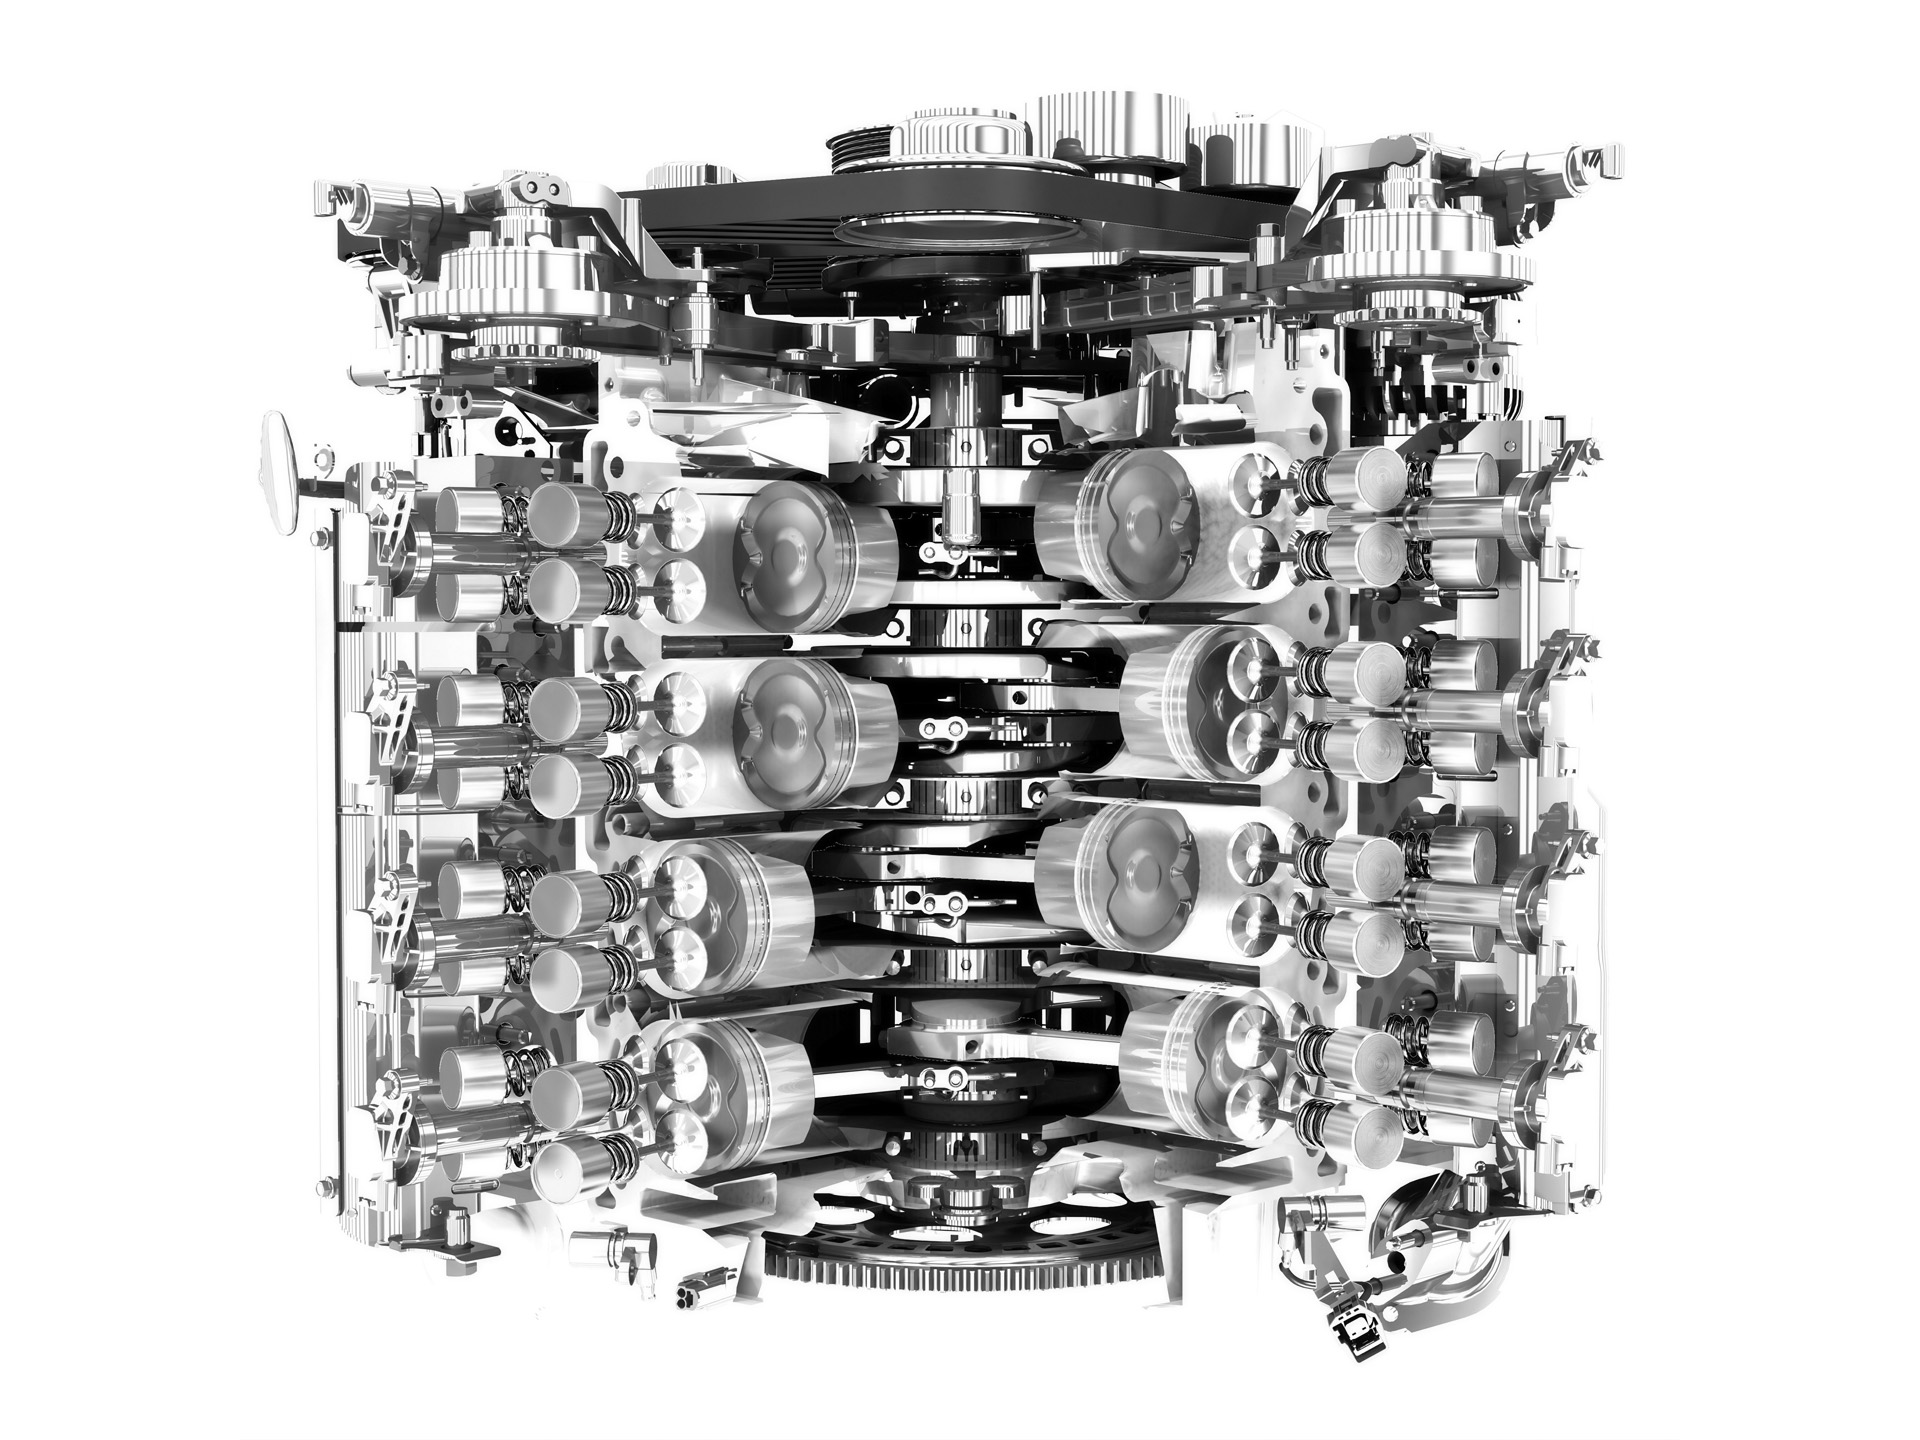 Sample P265a Engine